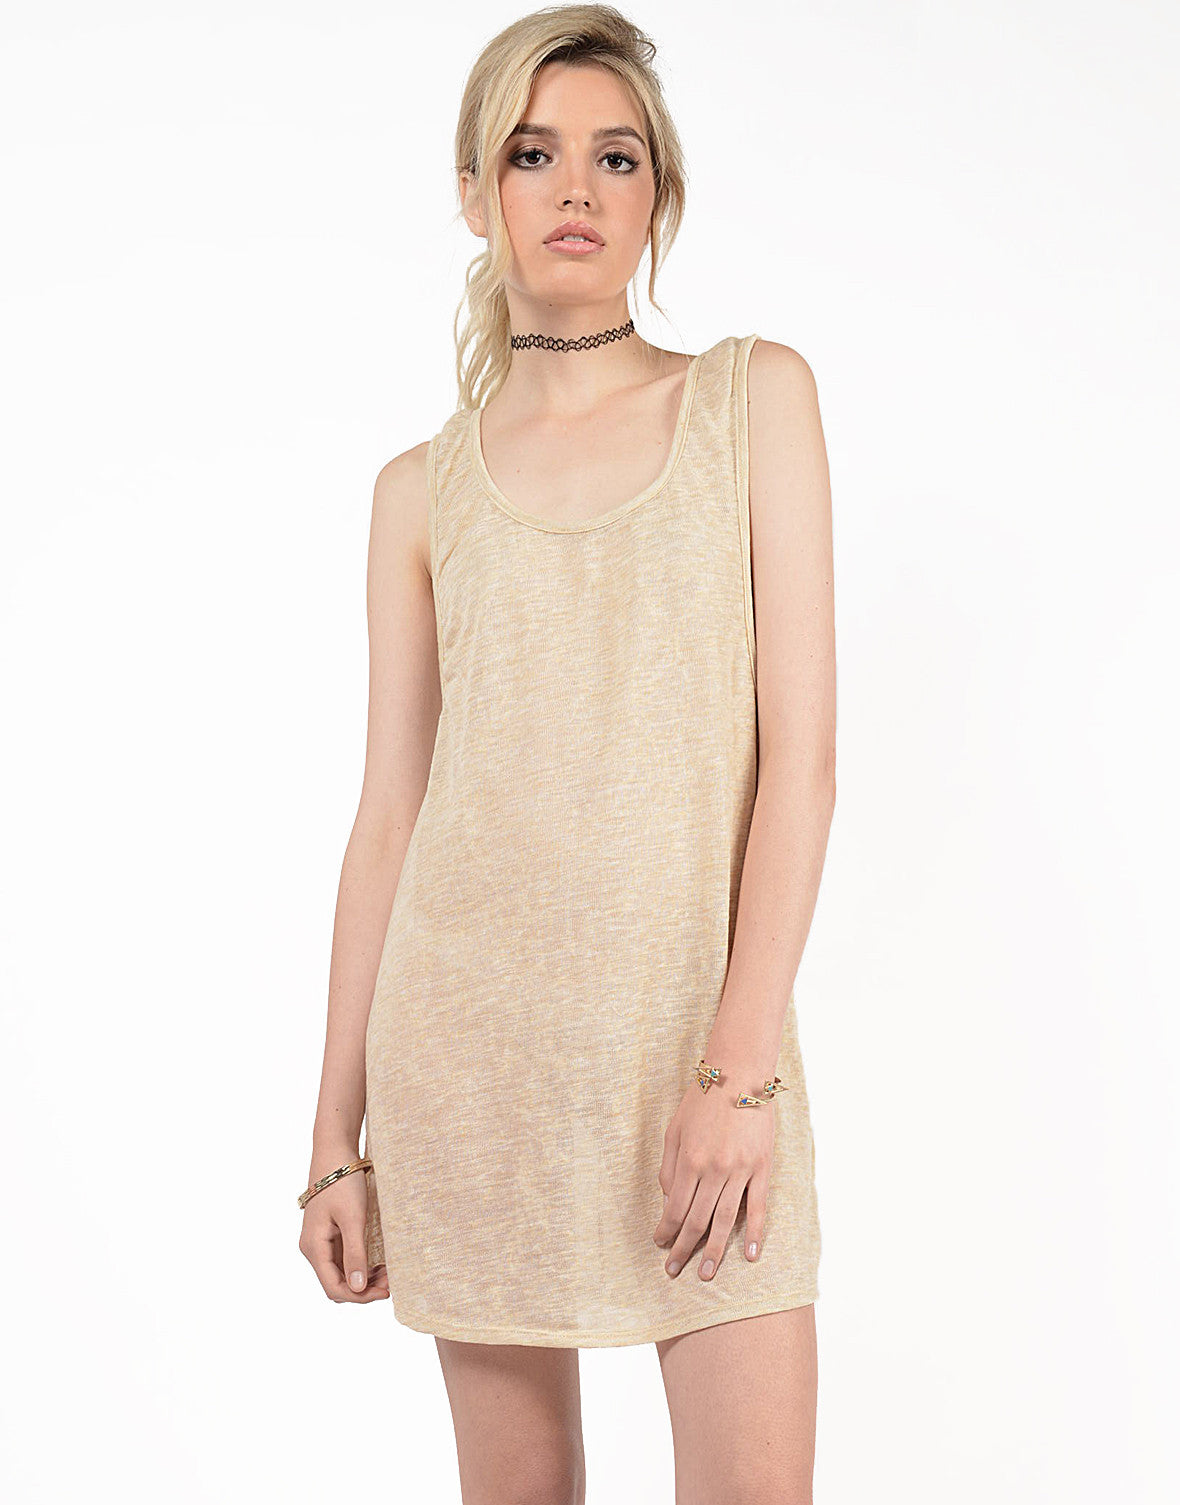 Front View of Knit Scoop Back Dress